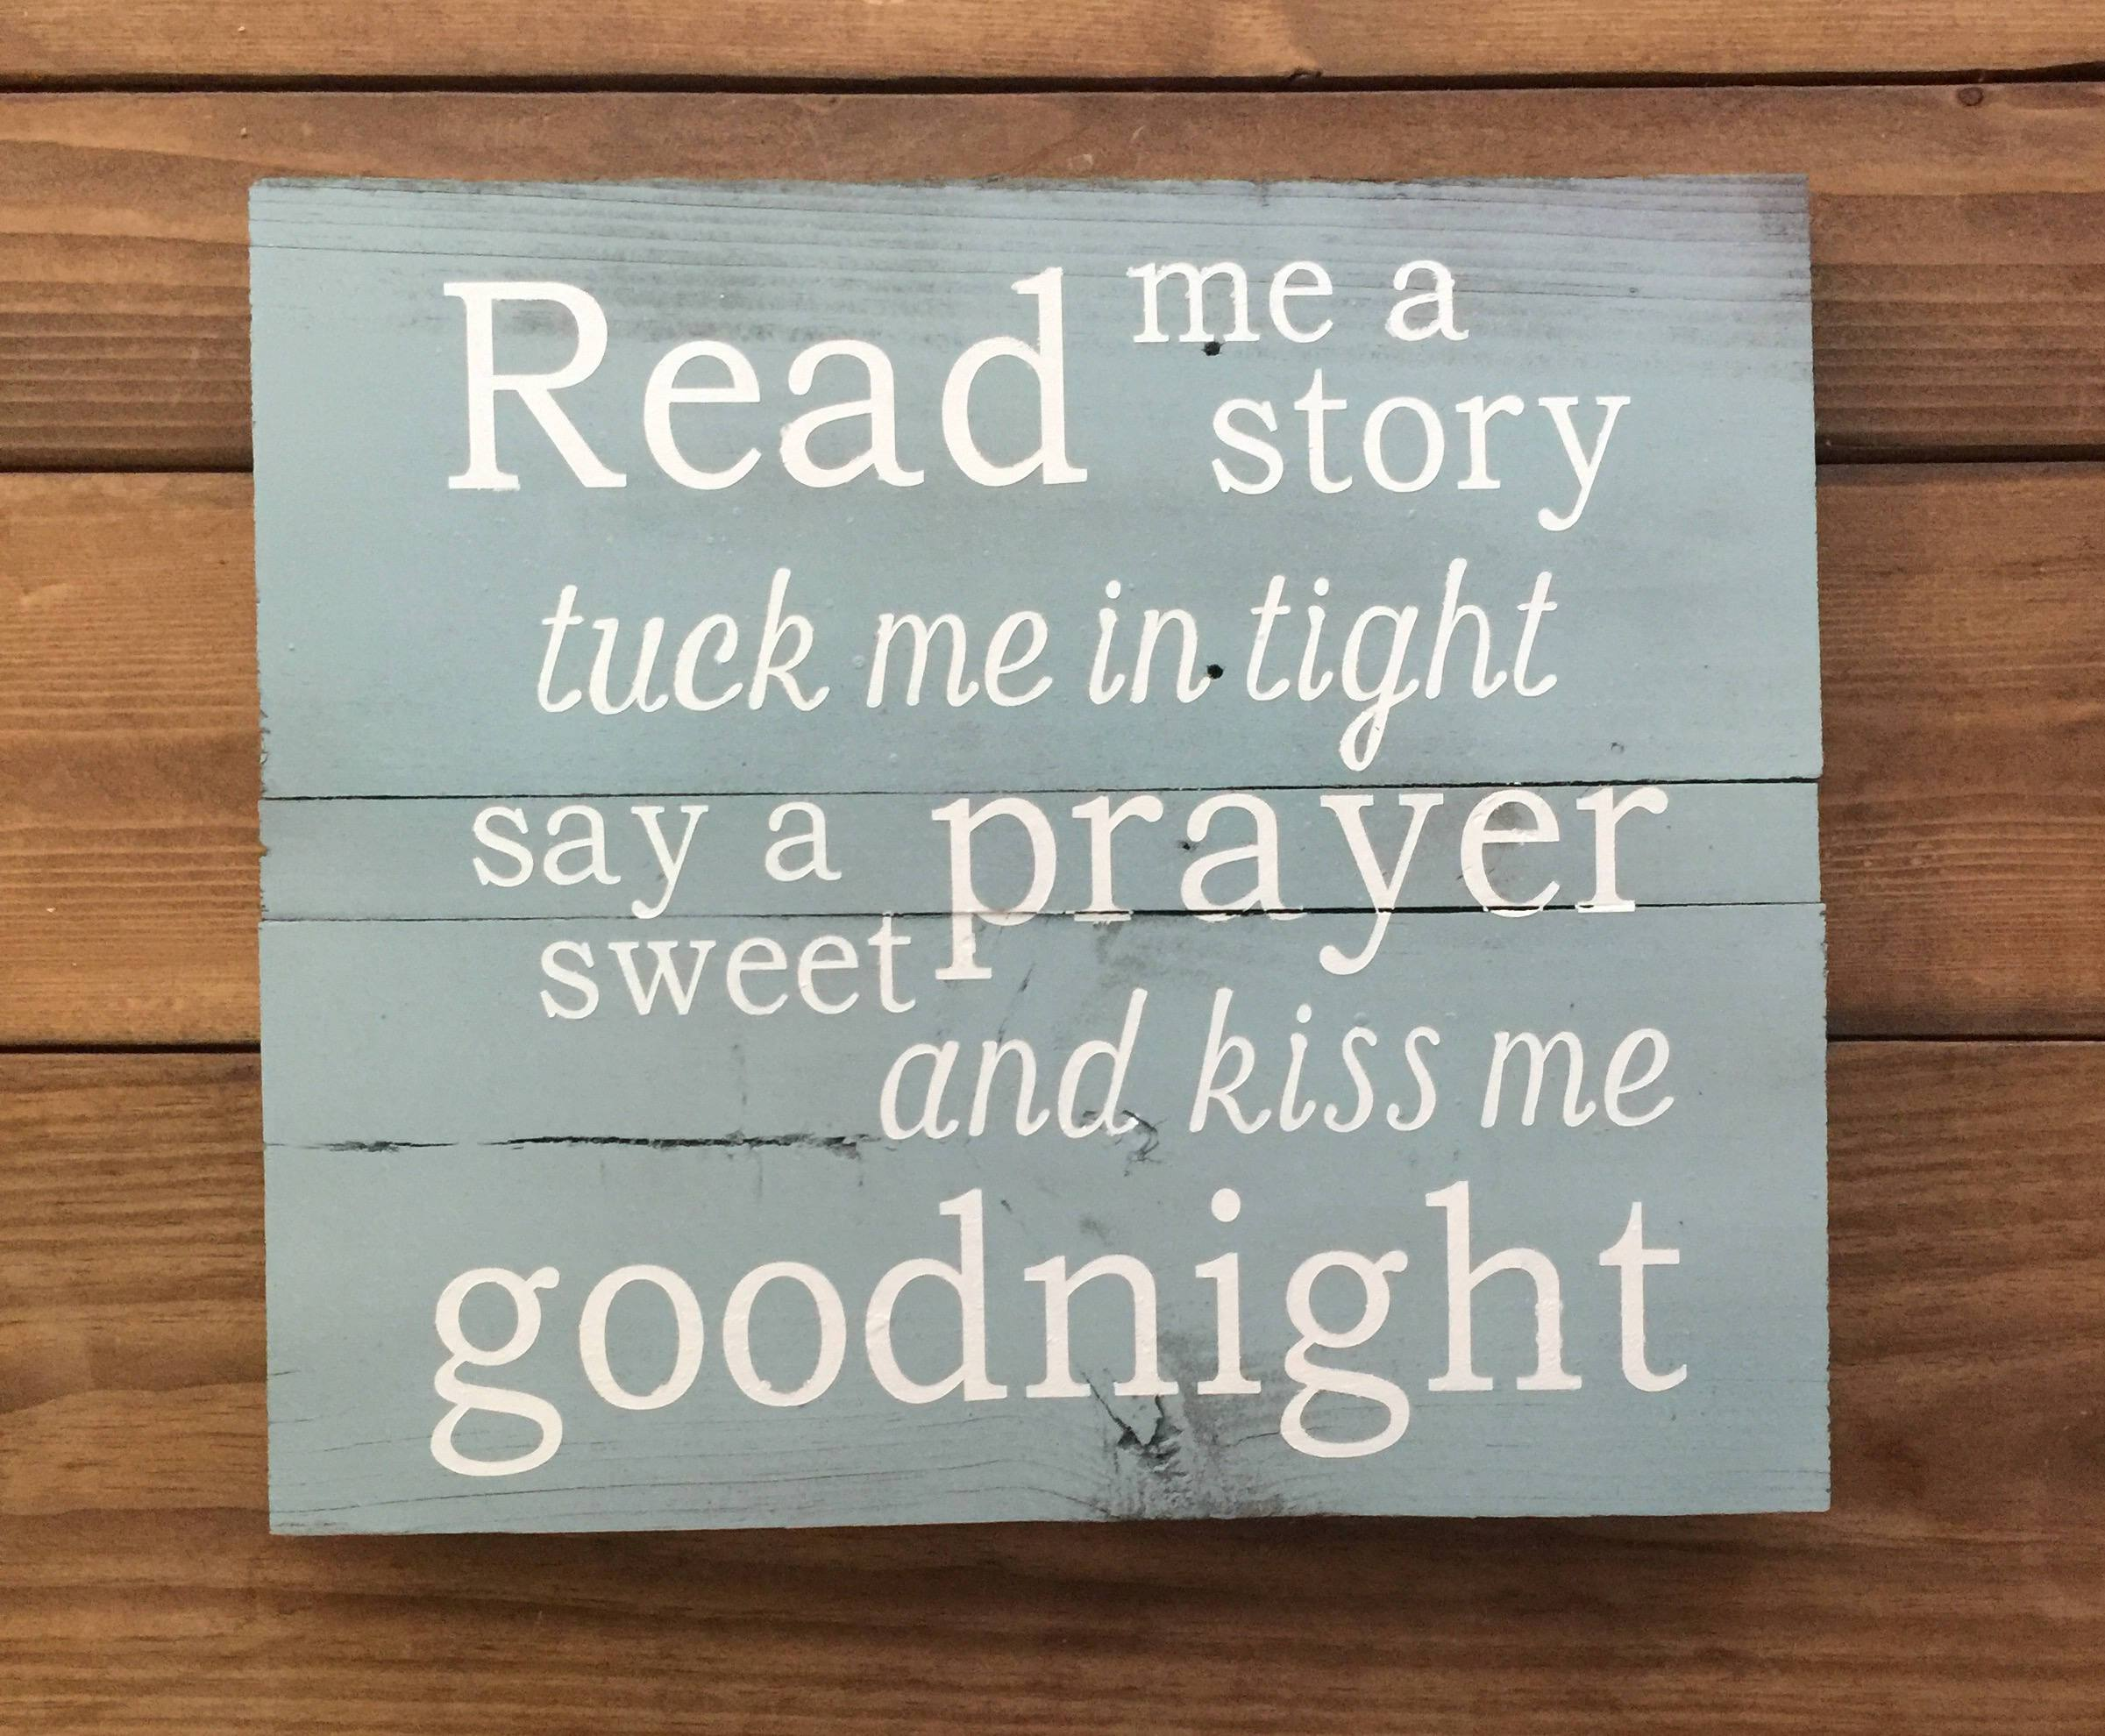 Read Me A Story Tuck Me In Tight Say A Sweet Prayer And Kiss Me Good Night Light Blue Wood Sign Nursery Decor Wood Signs Best Night Light Nursery Signs